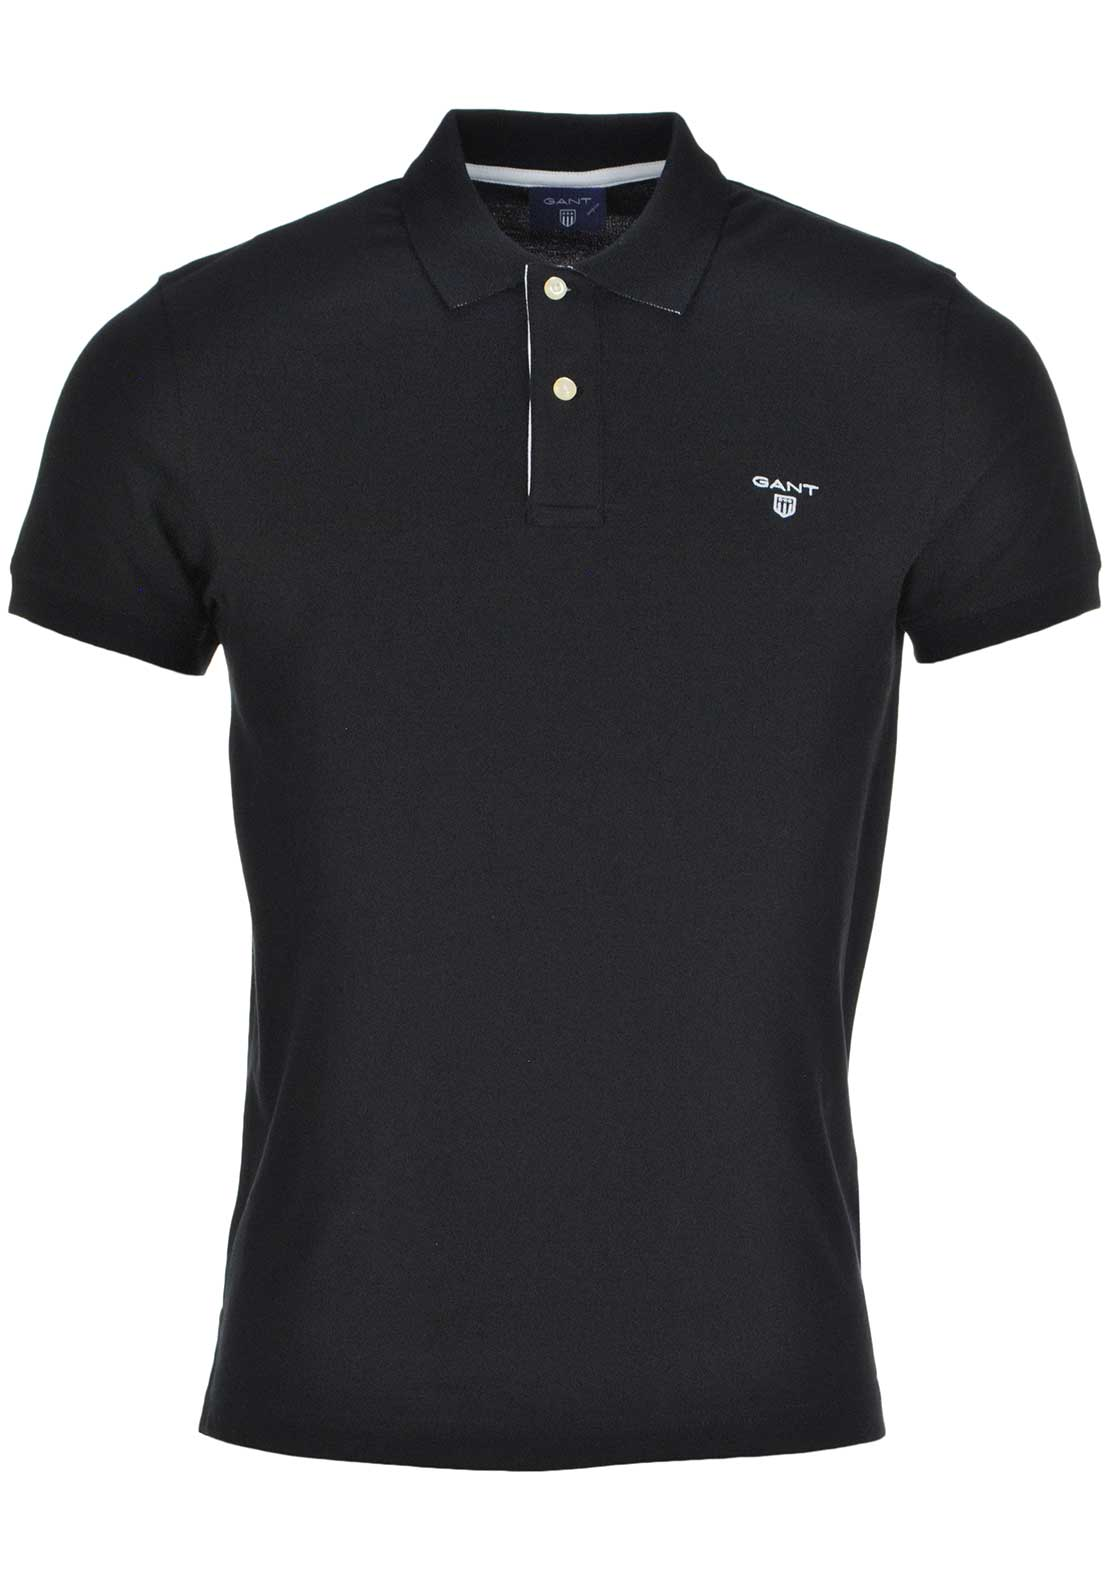 GANT Mens Contrast Collar Rugger Polo Shirt, Black